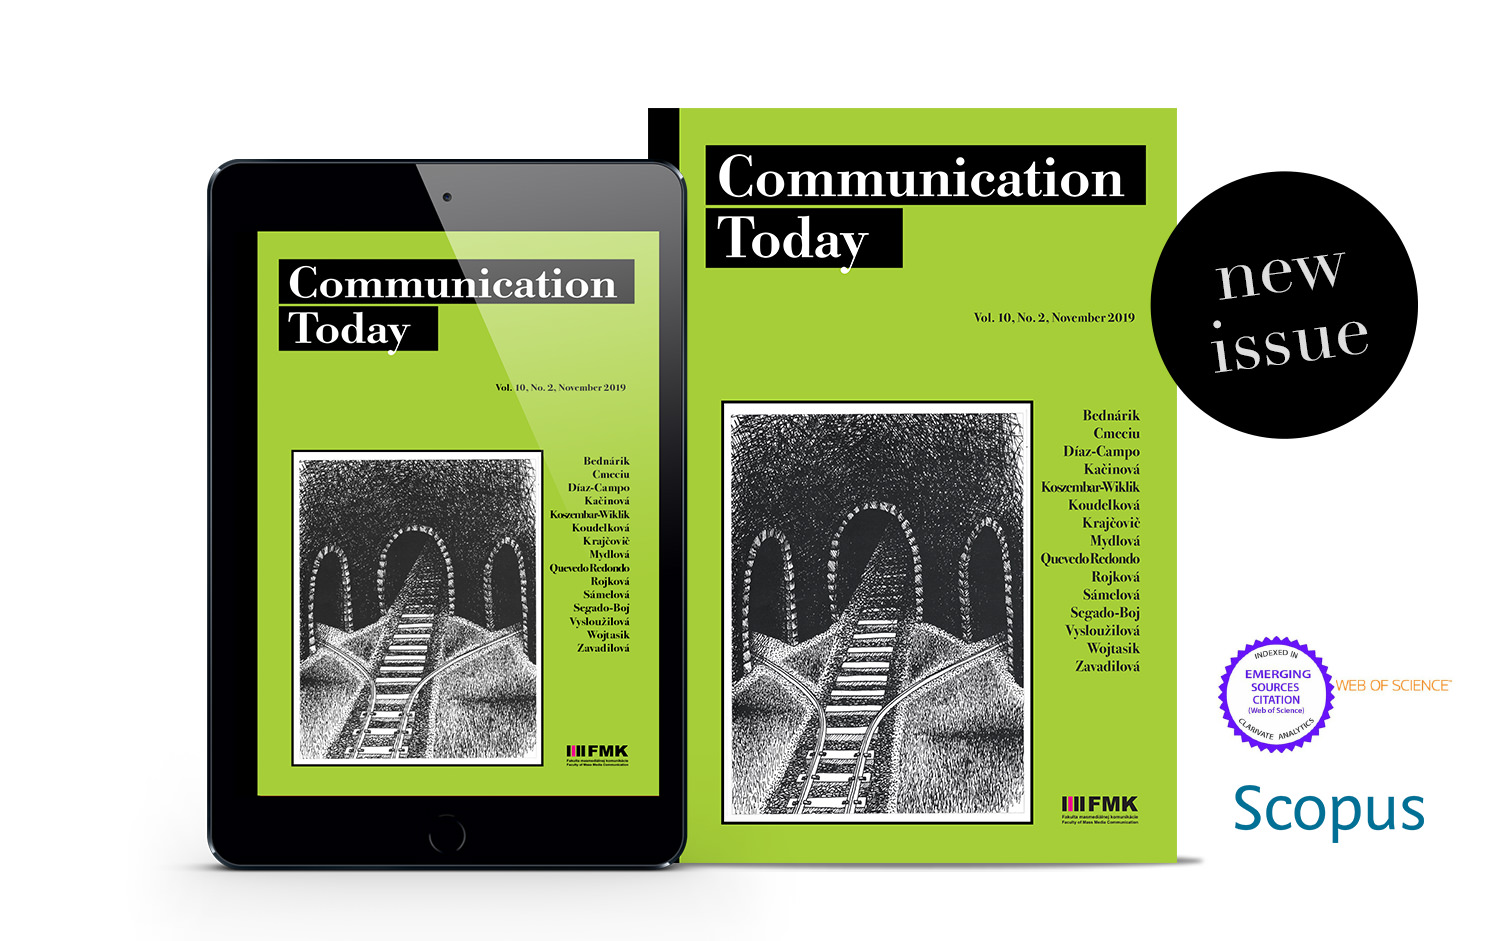 Cover: Communication Today no. 2, vol. 10